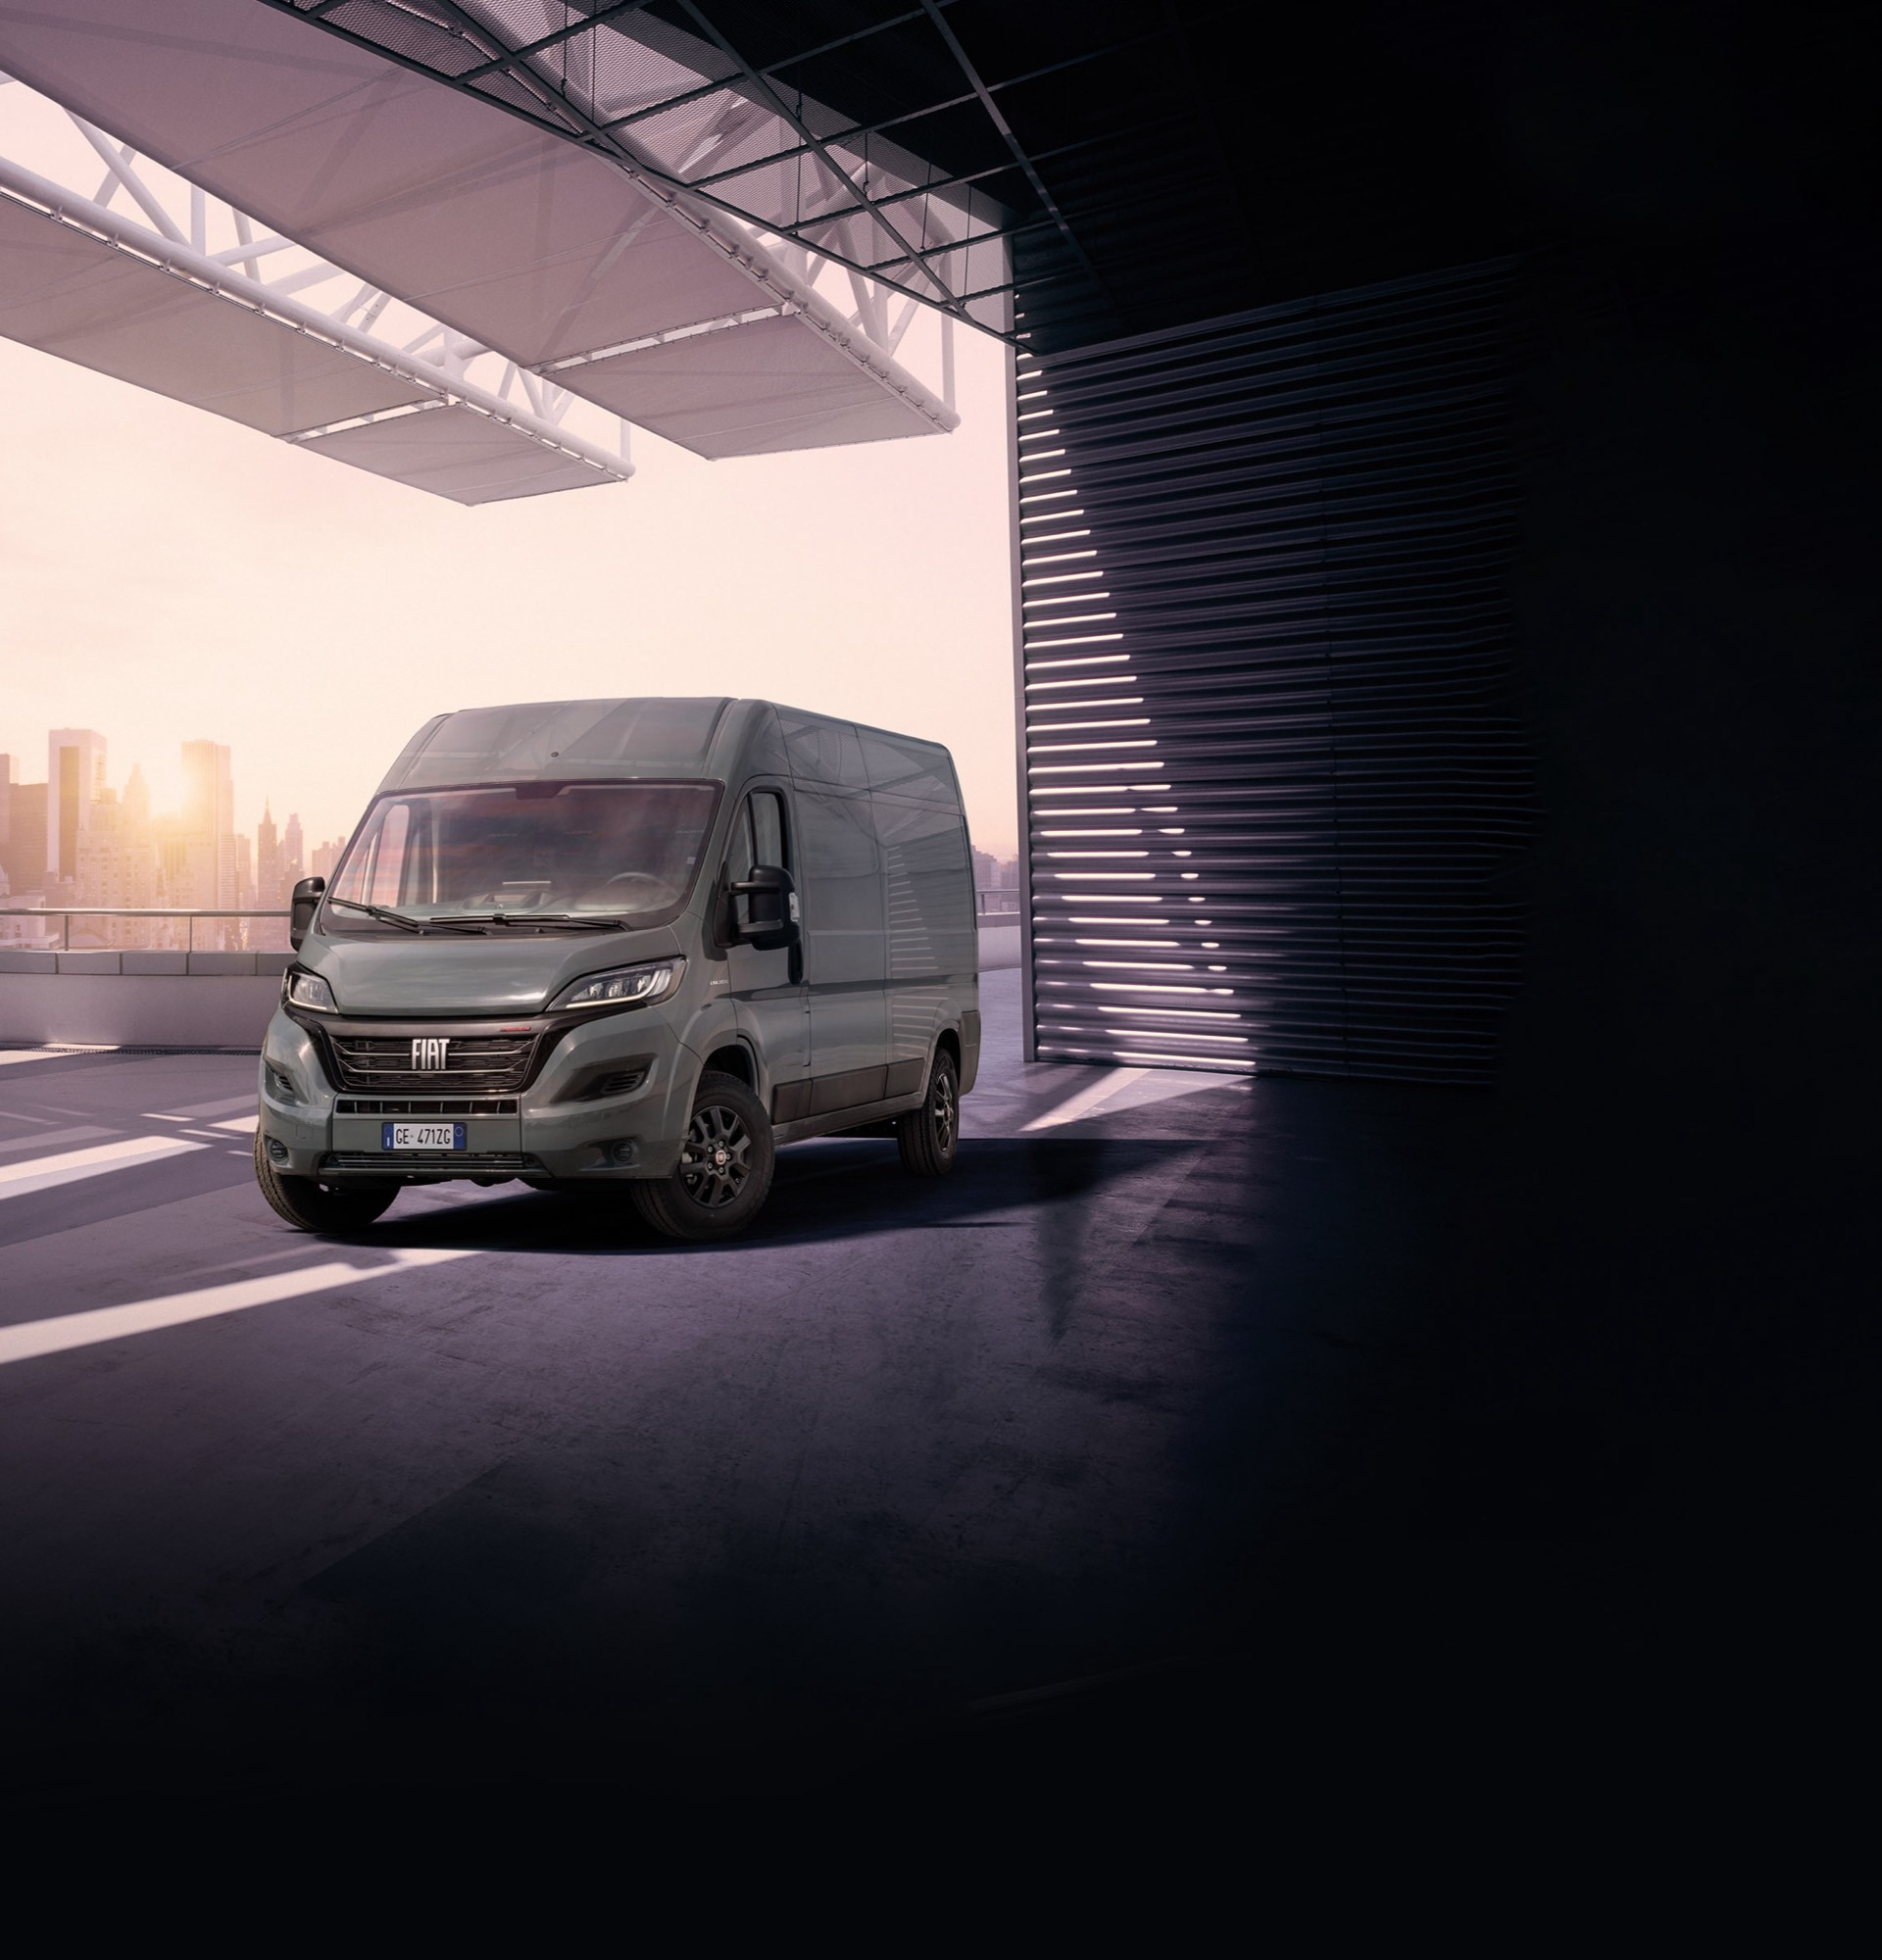 Fiat Ducato drivers are on the right road with custom commercial vehicle navigation from TomTom